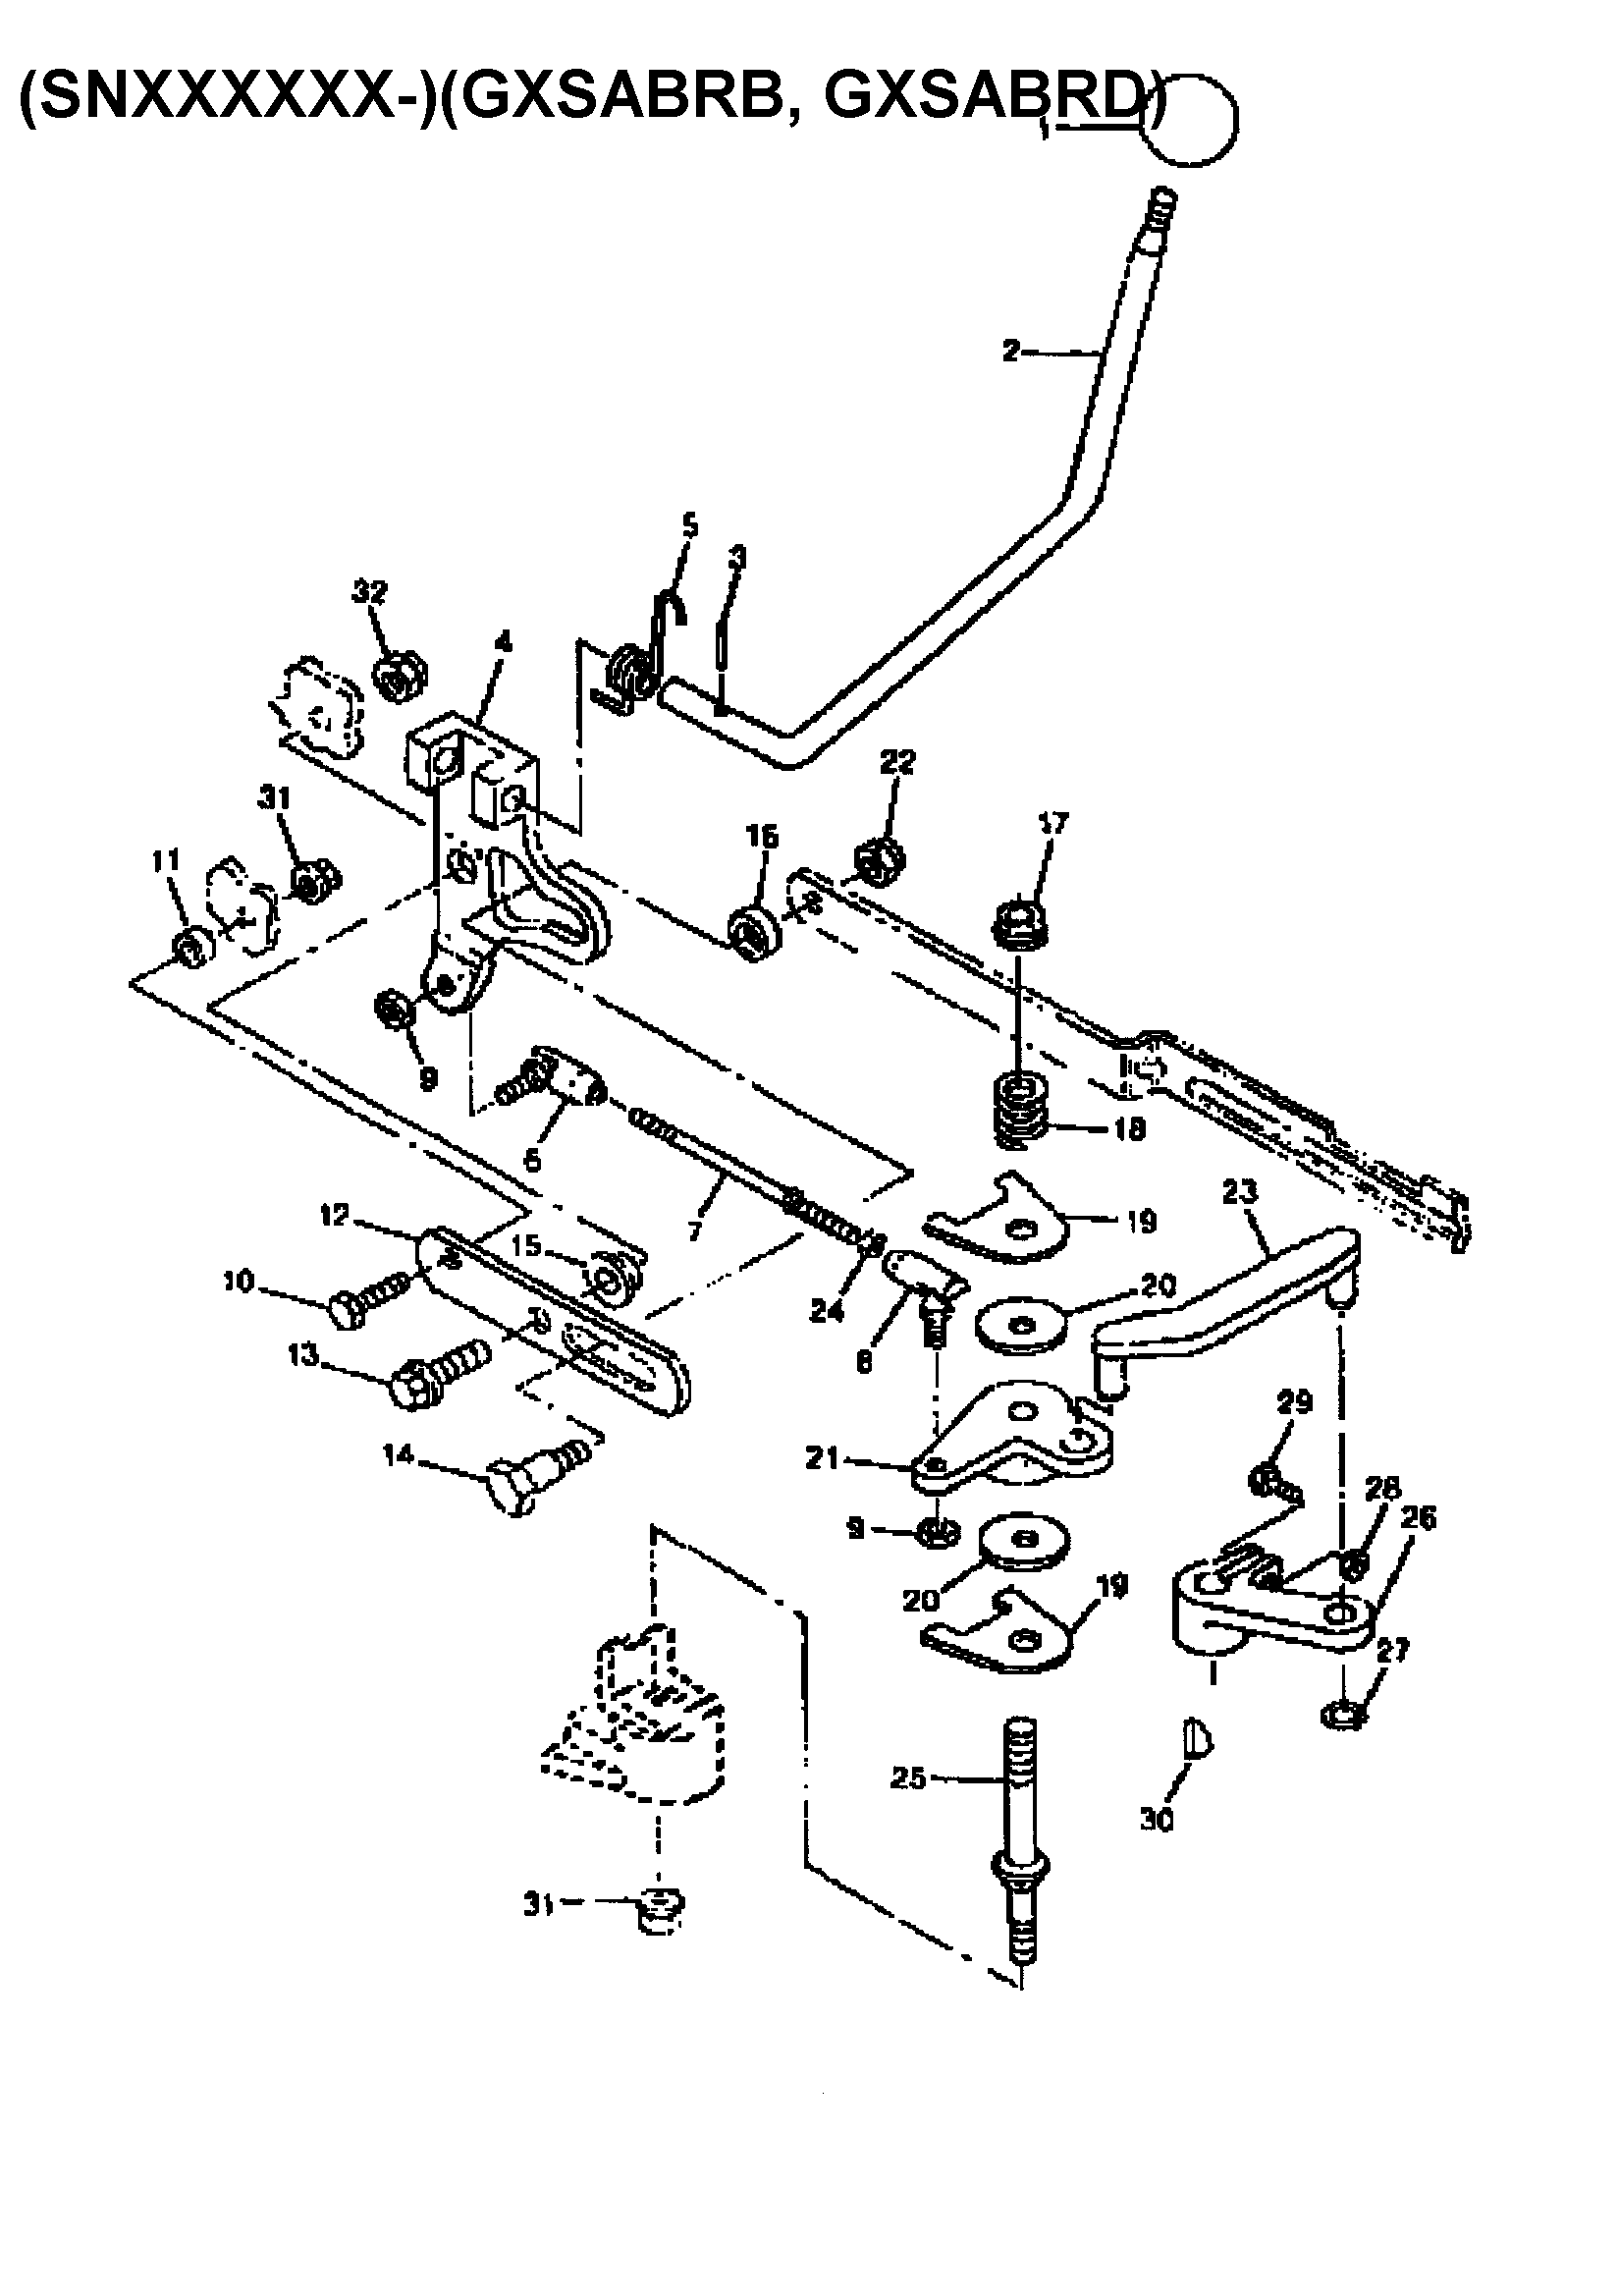 john deere sabre wiring diagram switch outlet diagrams double gang box do it yourself help 1338 belt diy enthusiasts